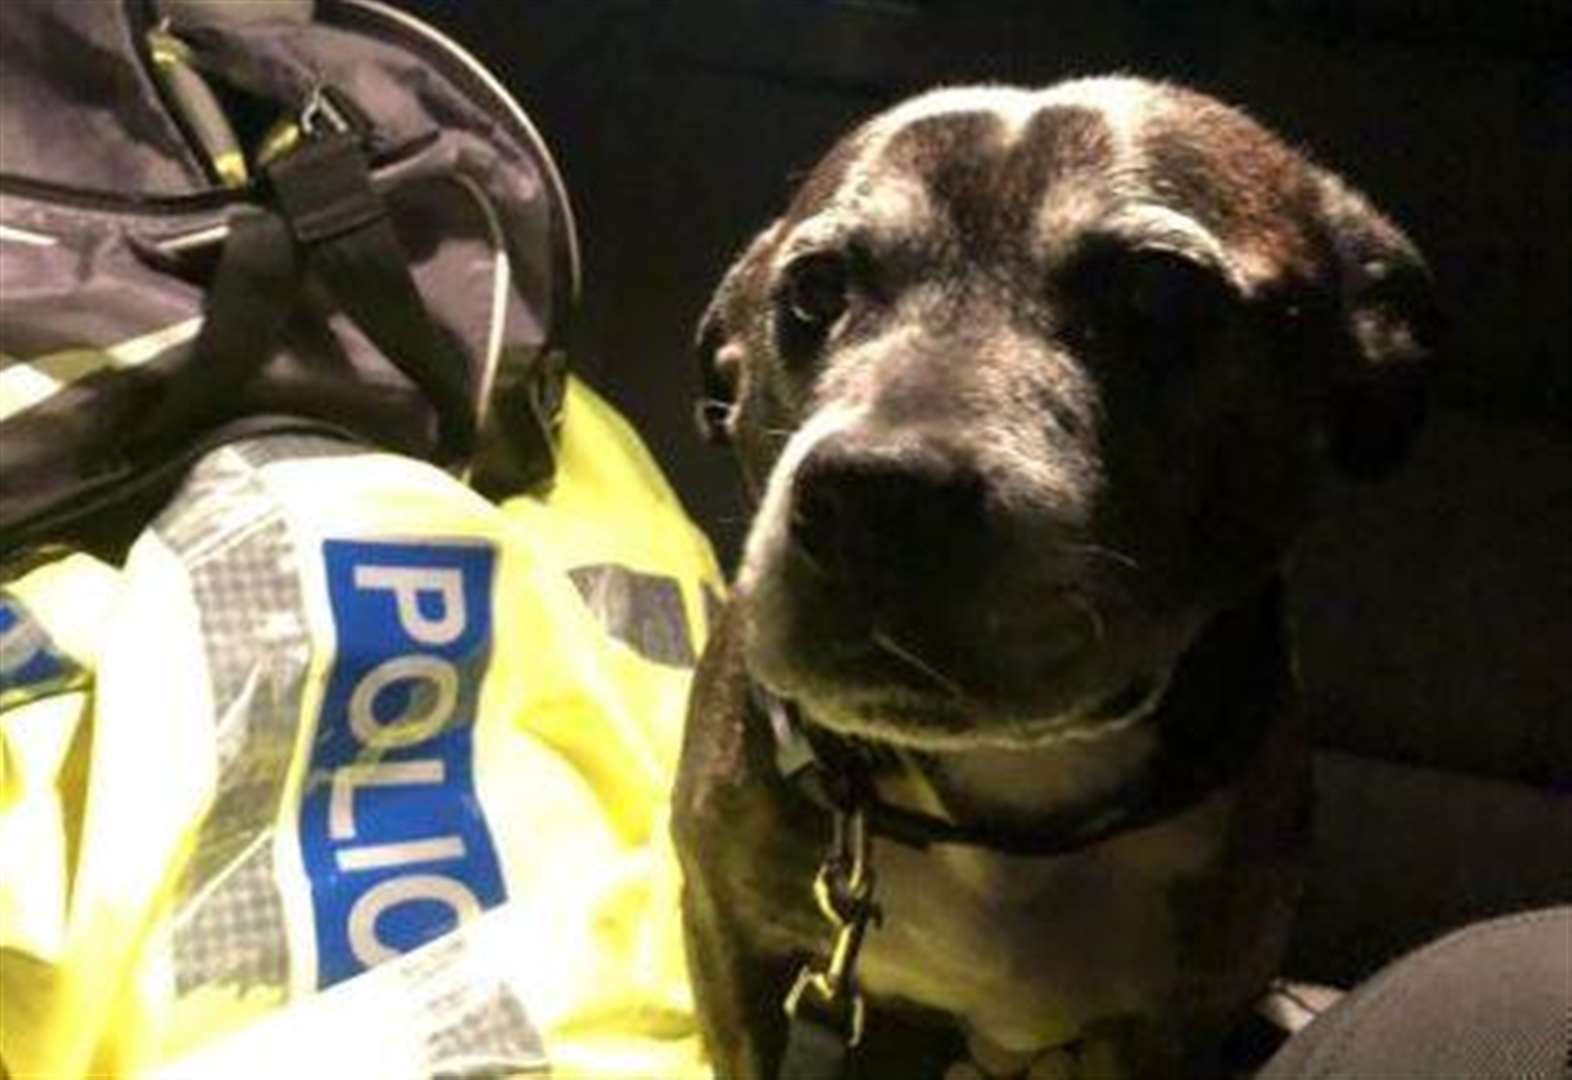 Dog found in dumped car